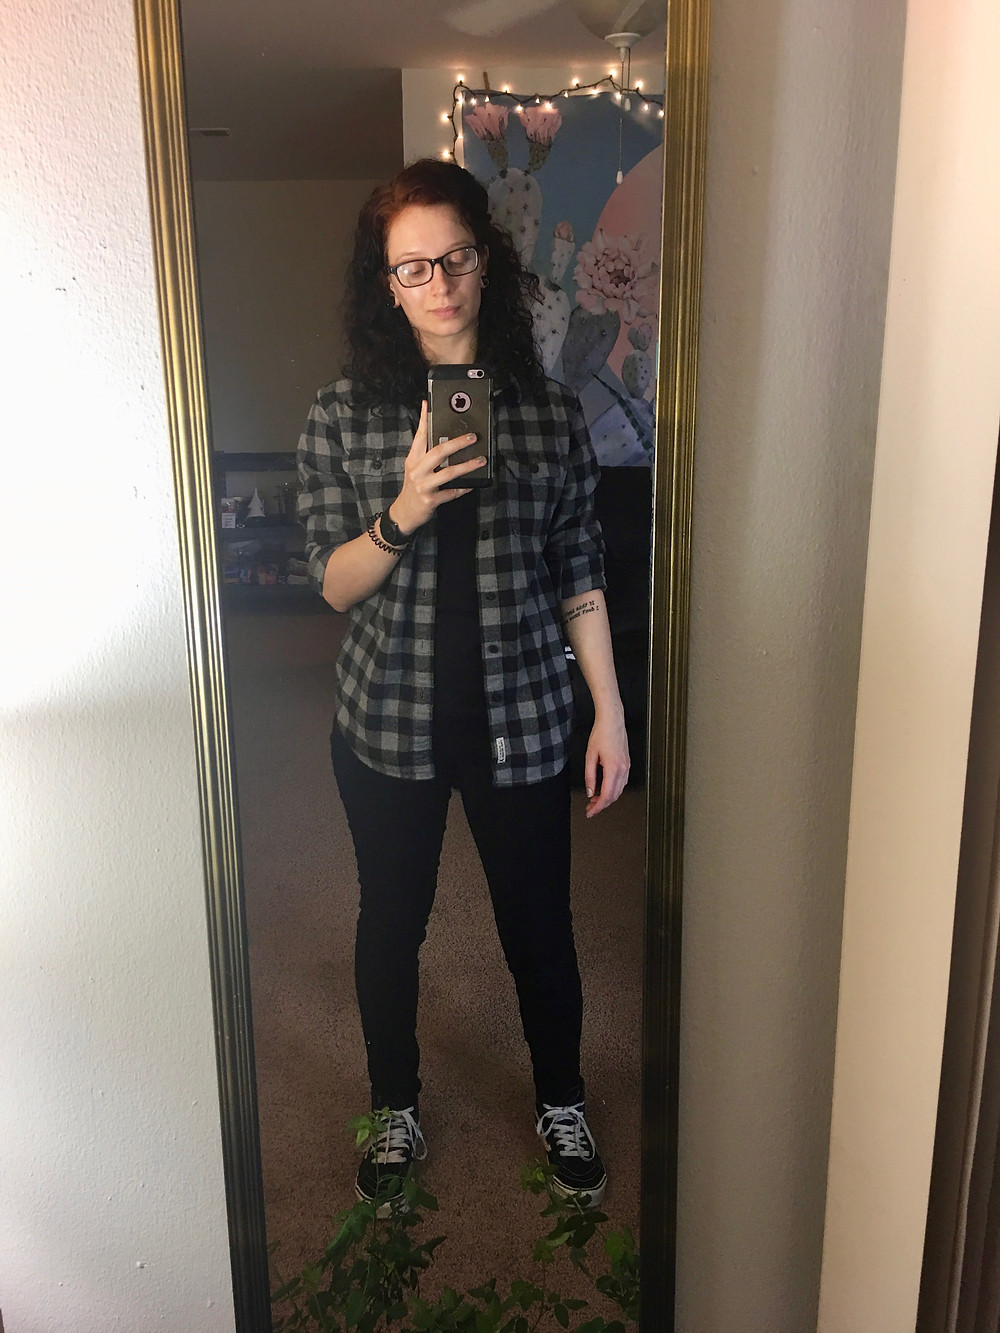 Same shirt, pants, and shoes, plus a black and grey plaid flannel from the men's section of American Eagle